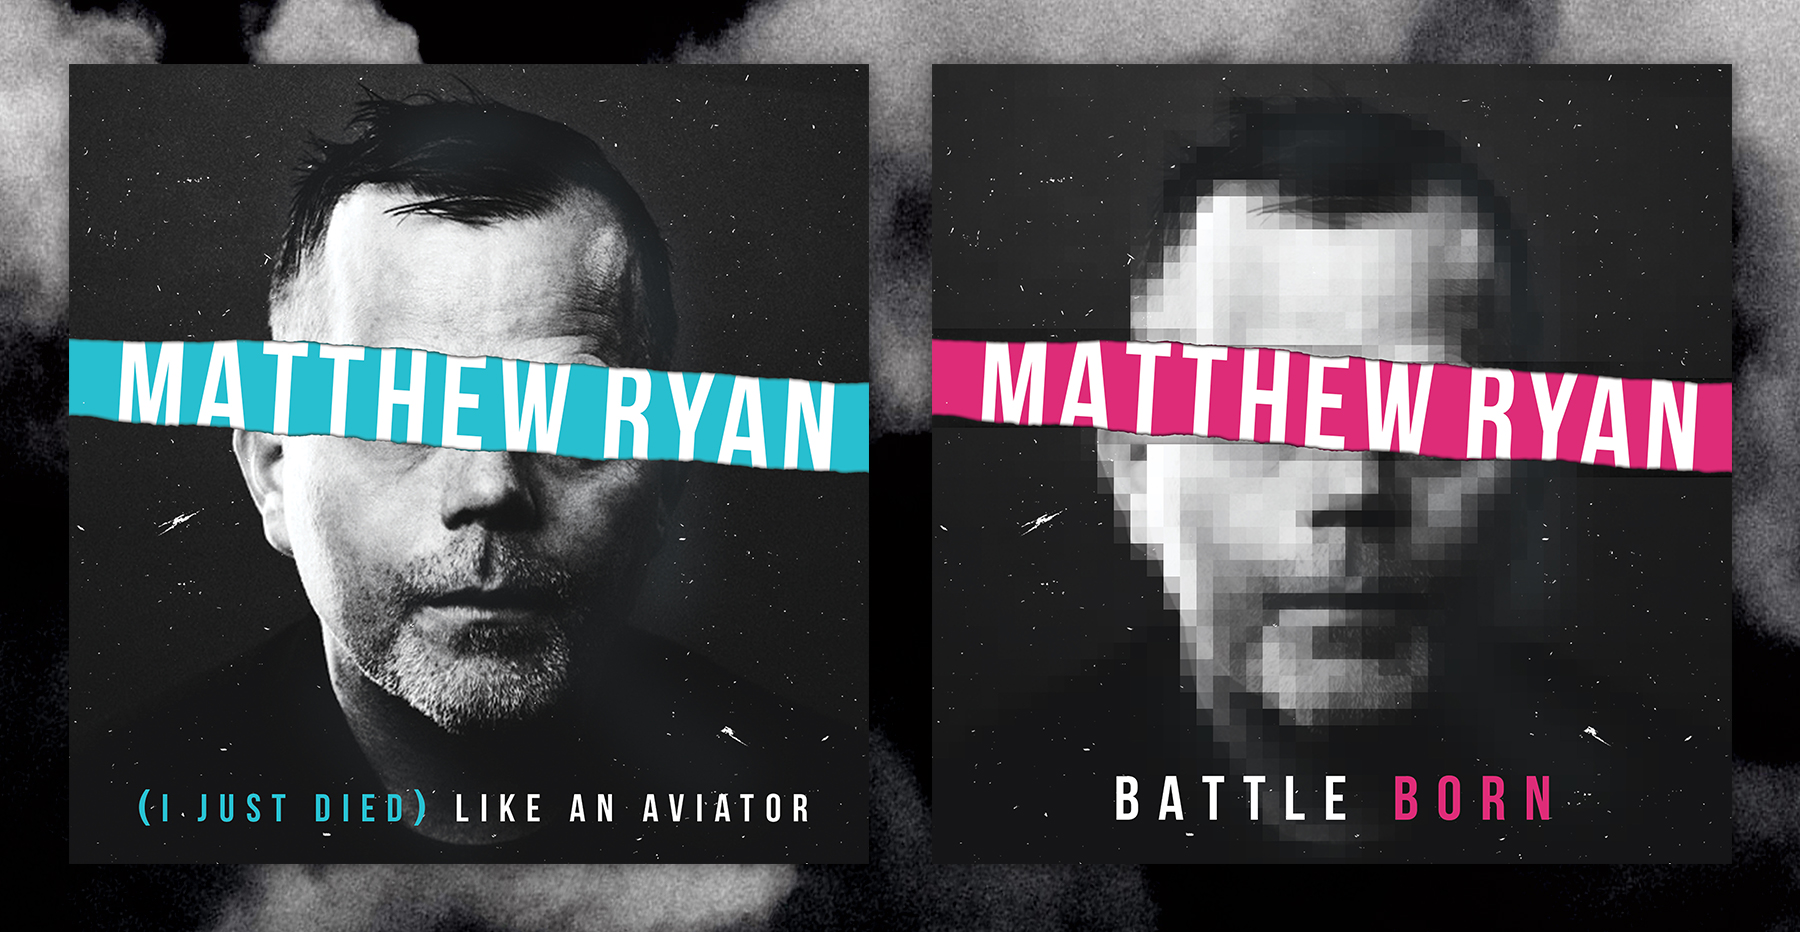 Matthew Ryan I Just Died Like and Aviator and Battle Born Spotify Singles